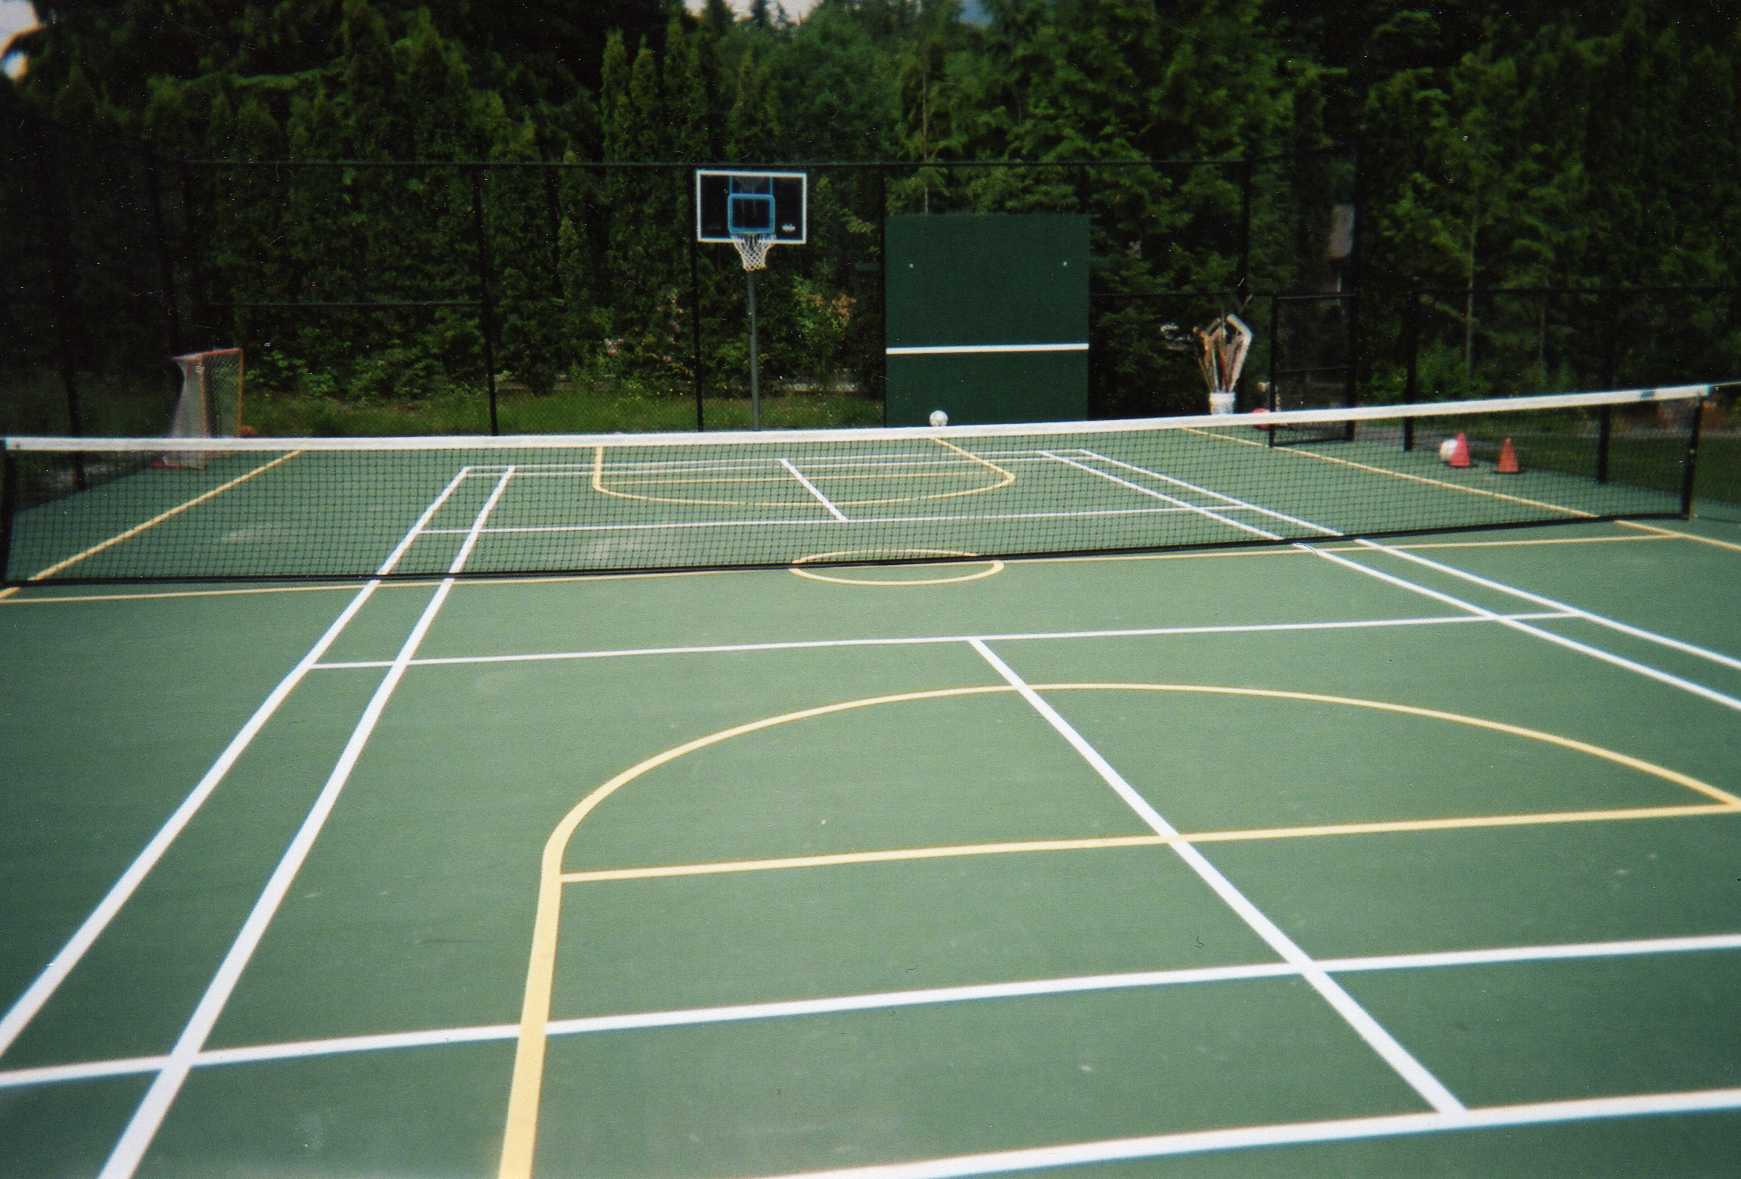 Pacific ace tennis multisport courts surfaces equipment for Sport court